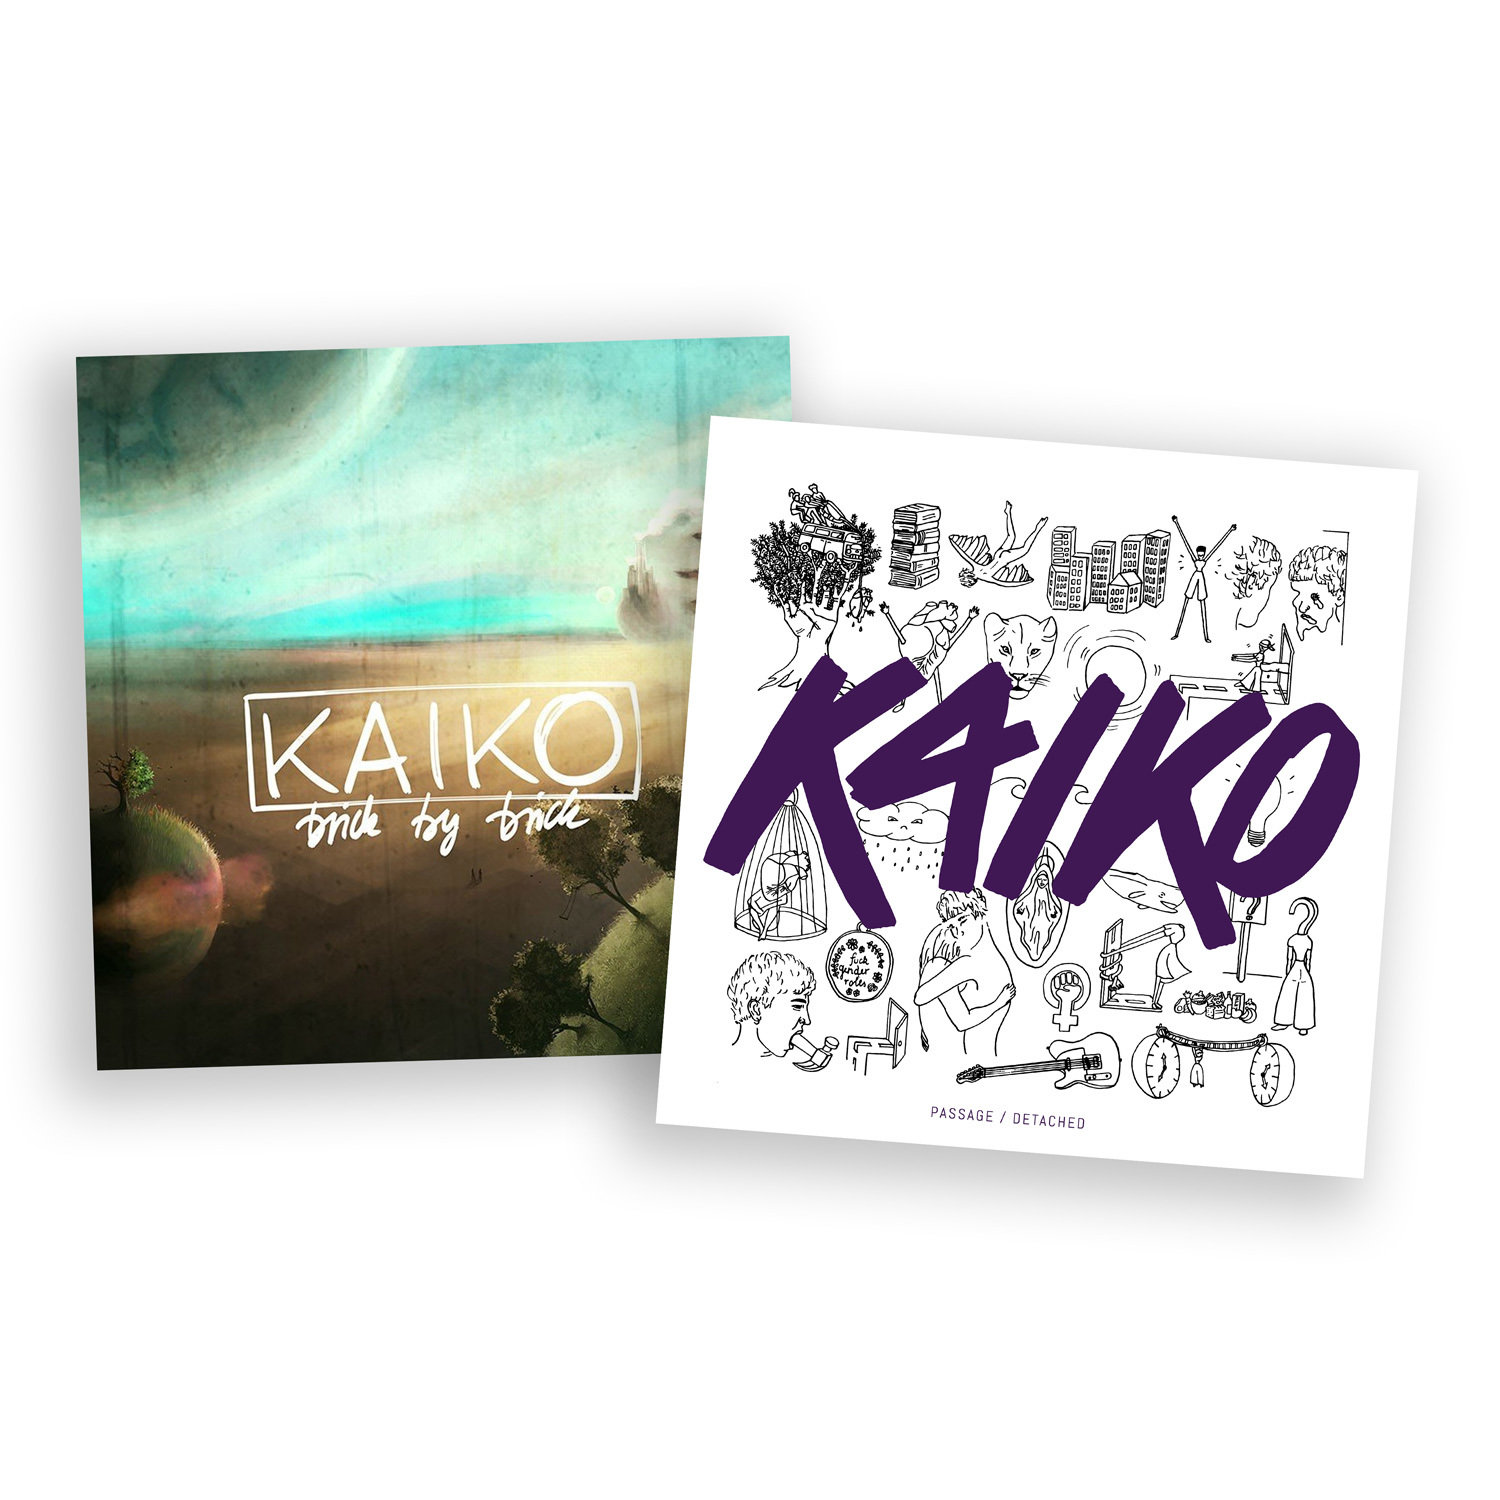 KAIKO Vinyl-Spezial: Brick by Brick (LP) + Passage / Detached (12'' EP) 00001